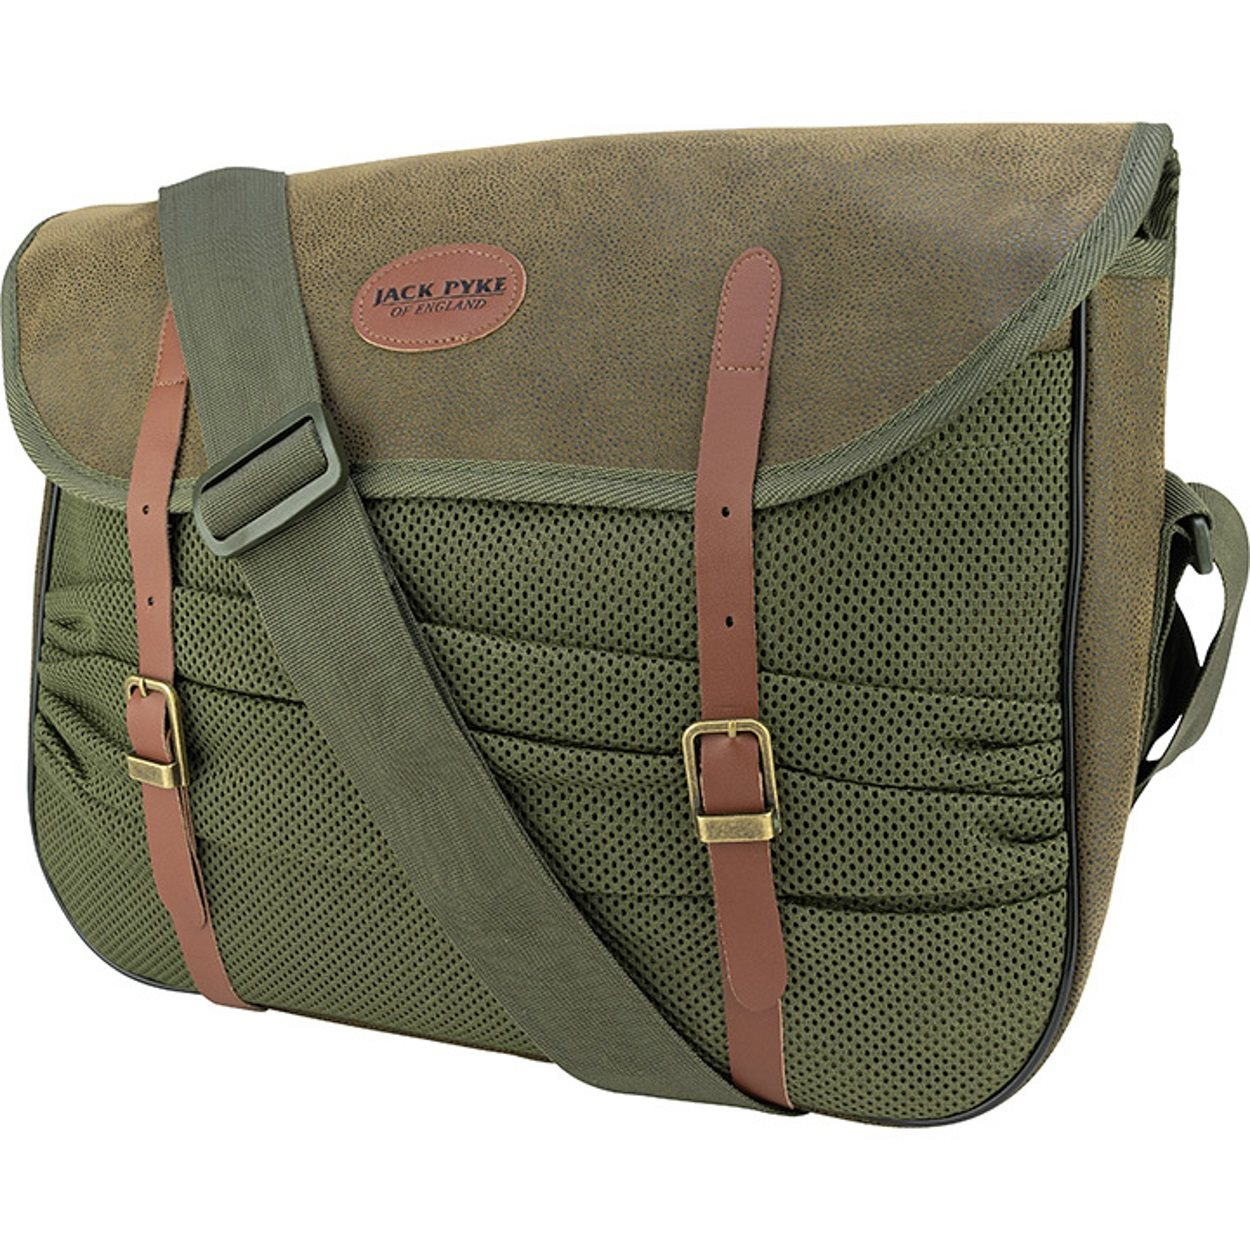 Carry GAME hunting with nets DUOTEX OLIVE JACK PYKE JBAGGAMEDUG L-11